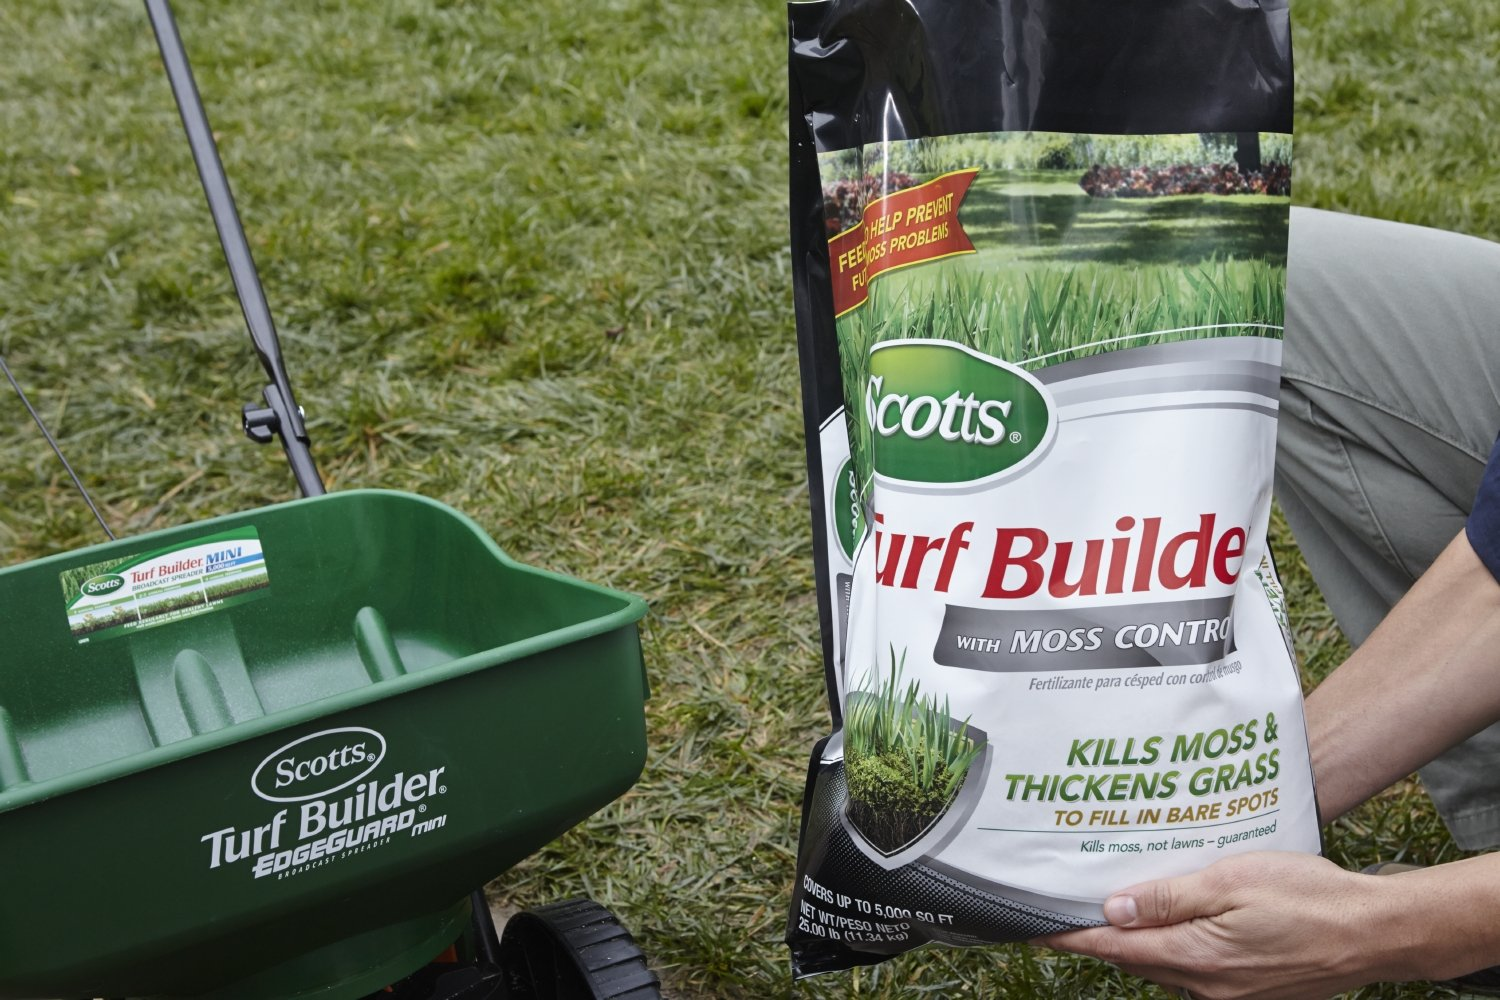 Amazon.com : Scotts Turf Builder with Moss Control, 5M. Not available in FL, MD, NH, or NJ. : Scotts? Turf Builder? With Moss Control : Garden & Outdoor